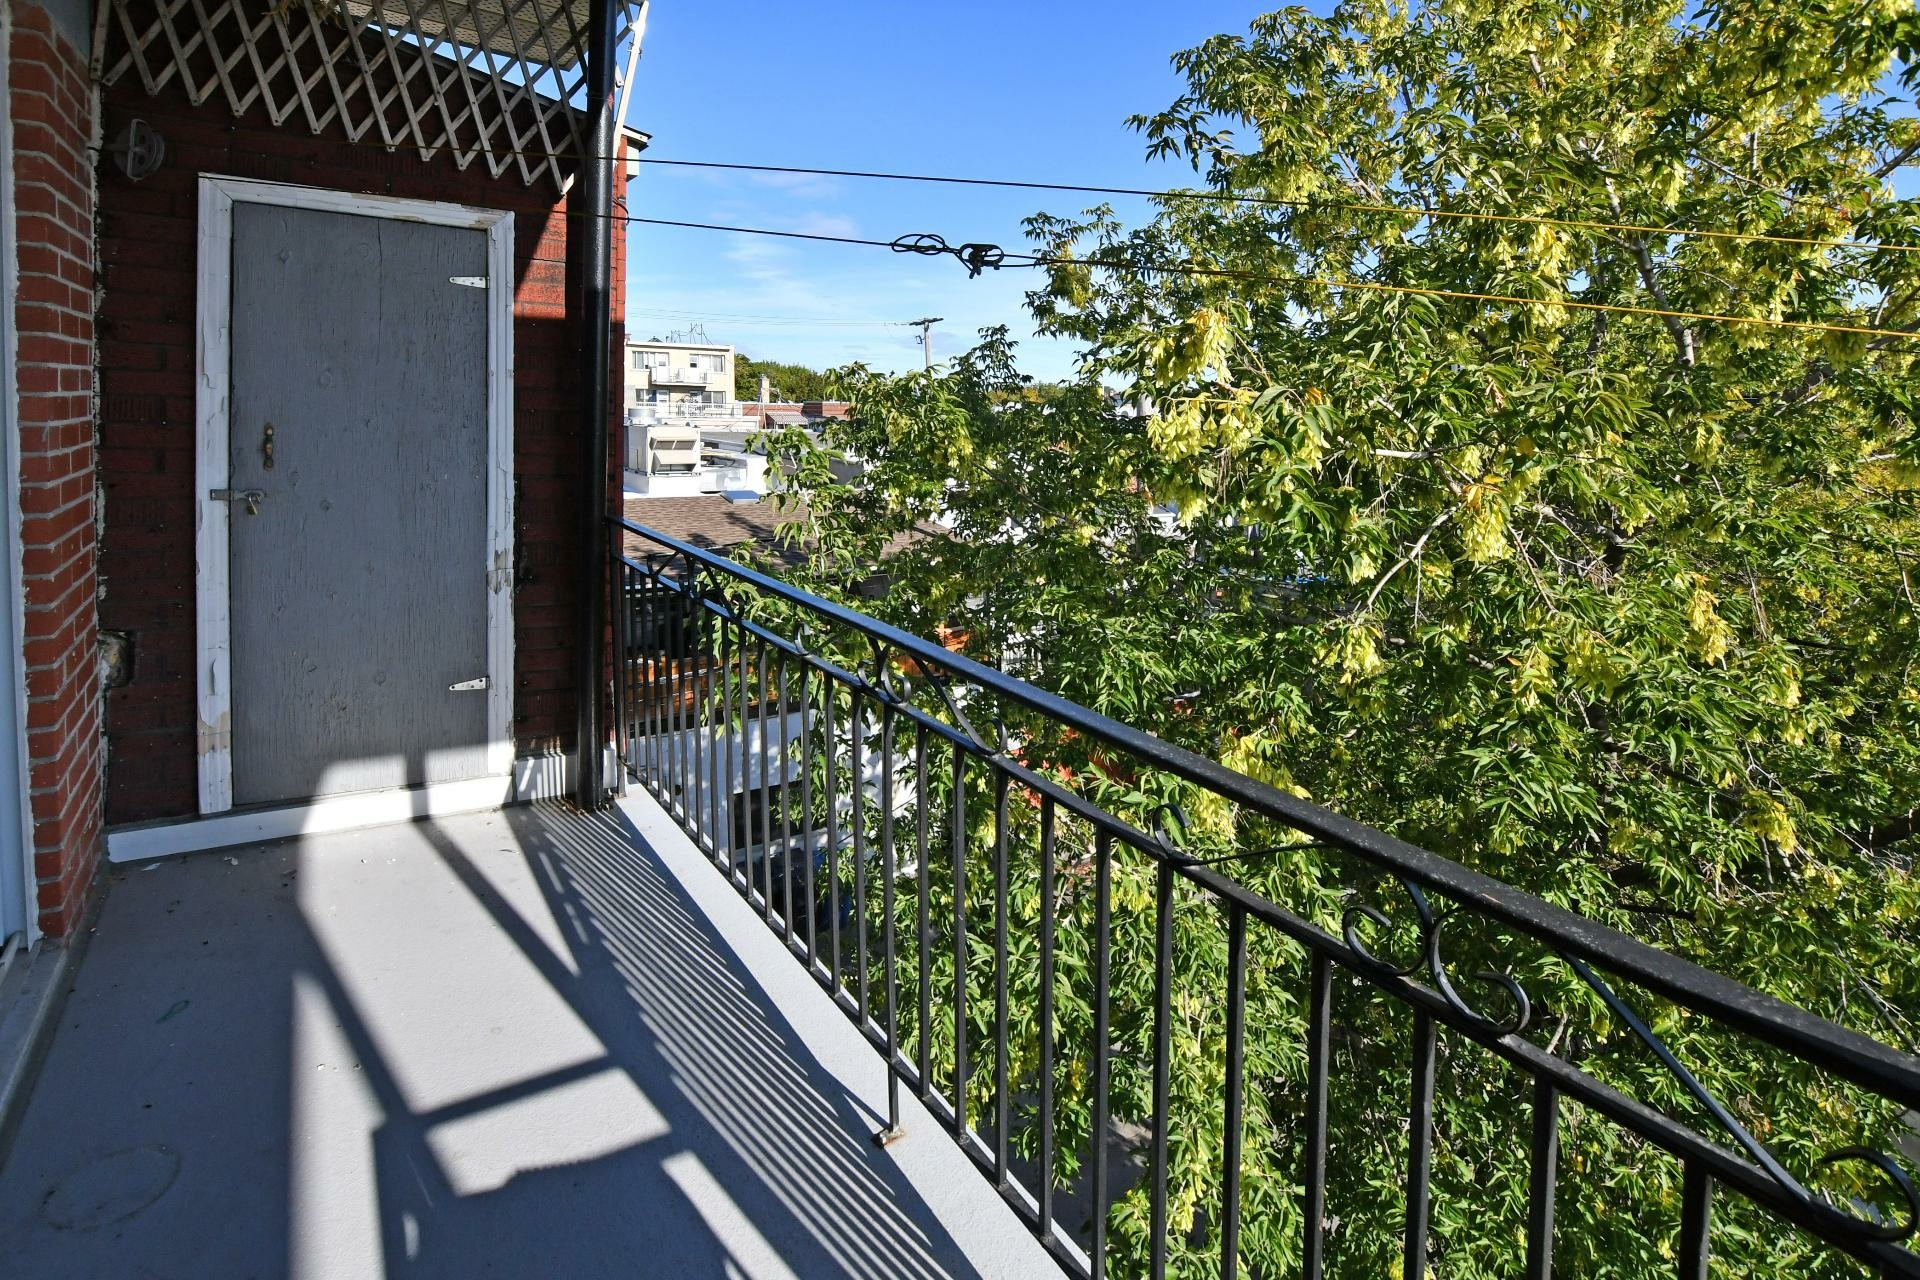 image 8 - Income property For sale Villeray/Saint-Michel/Parc-Extension Montréal  - 4 rooms